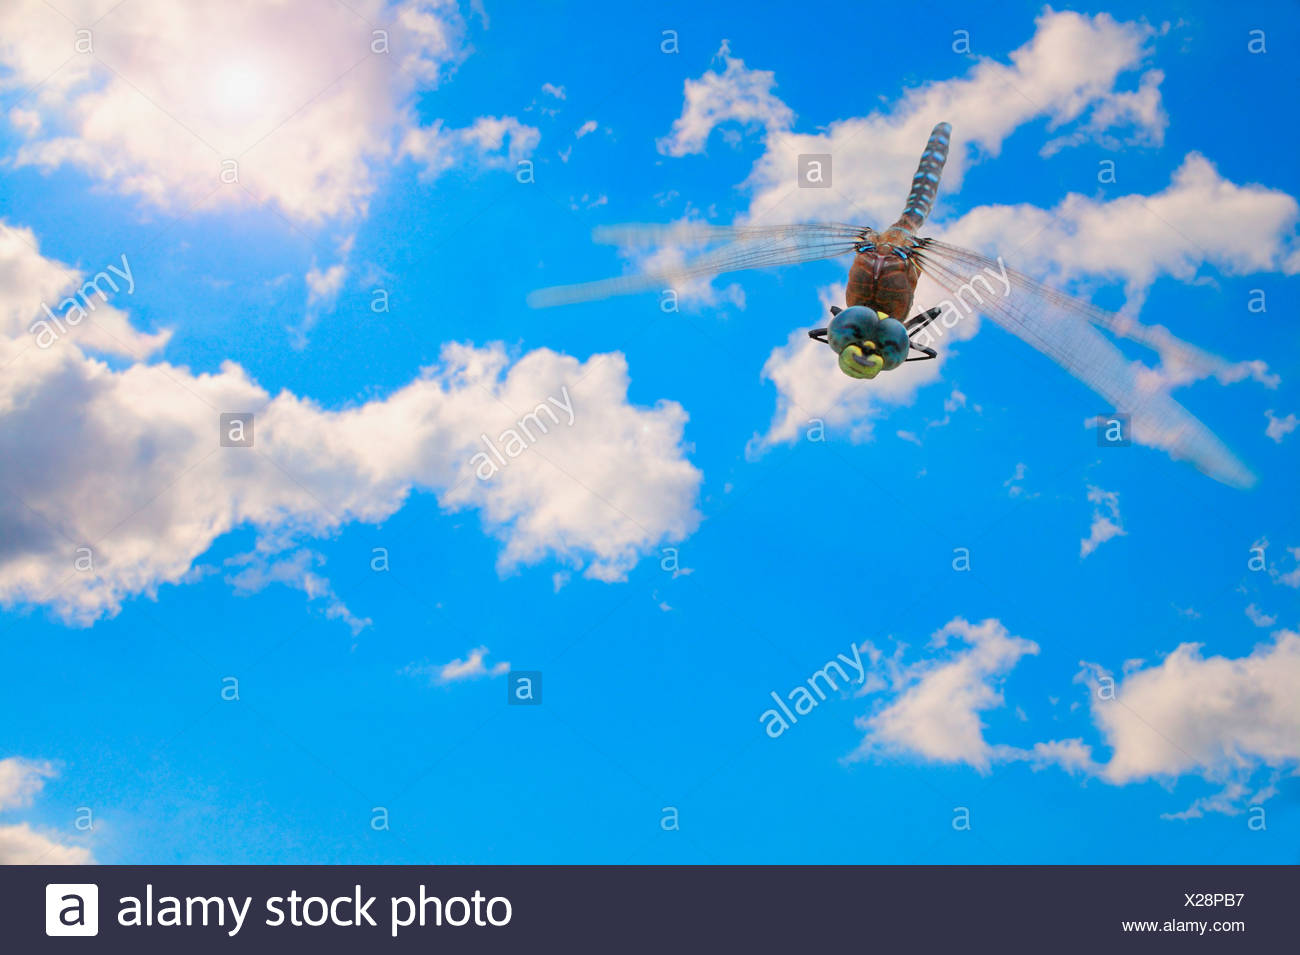 A computer edited bug against a blue sky - Stock Image